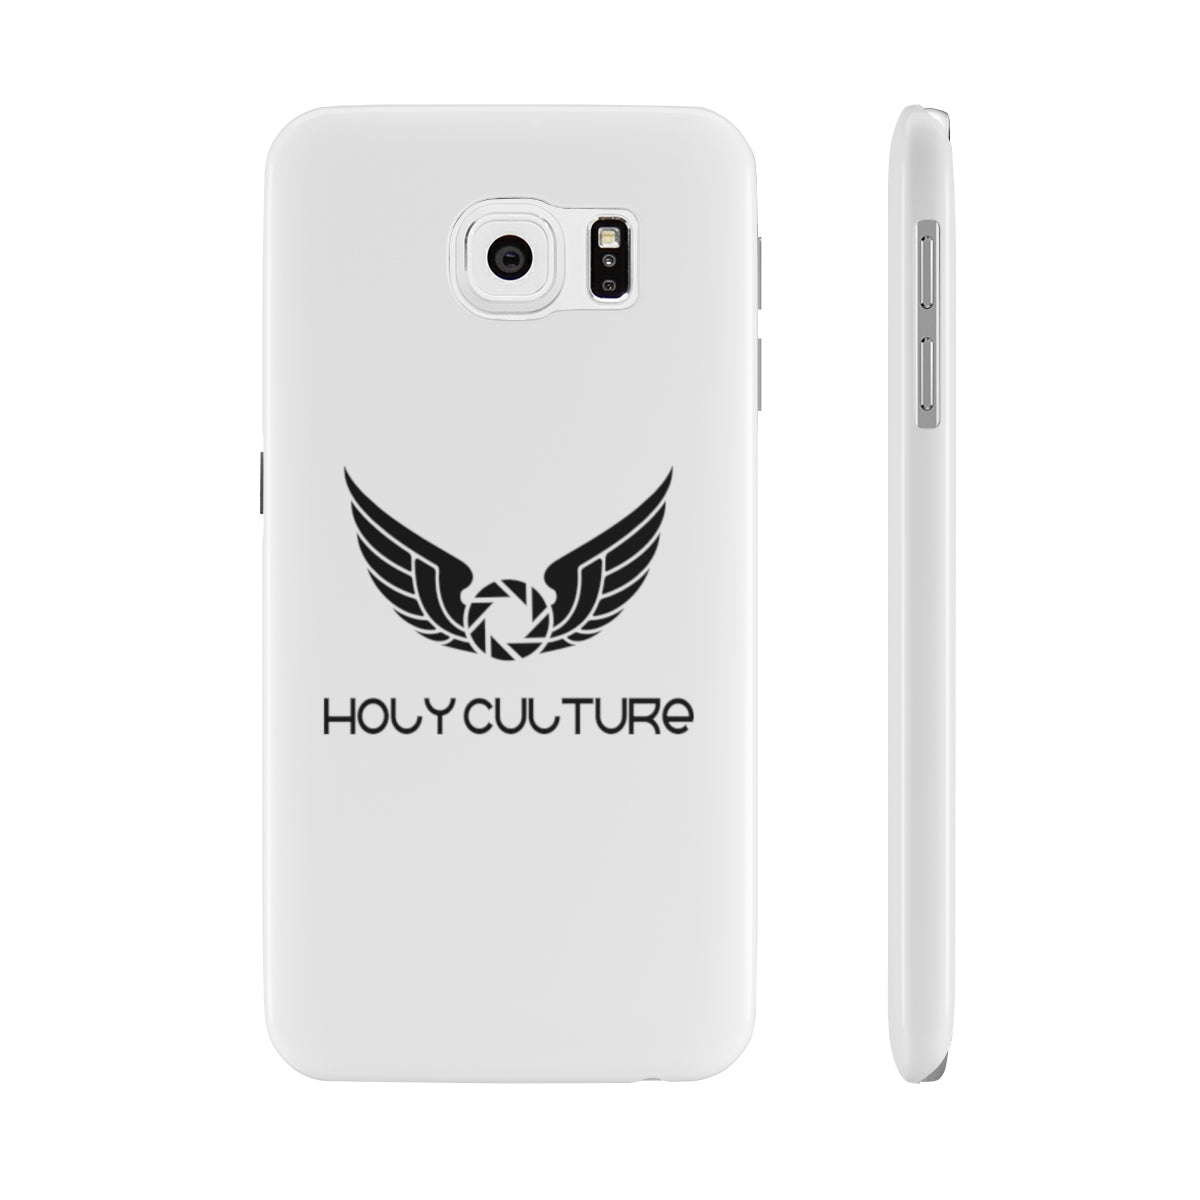 Holy Culture White Mate Slim Phone Cases